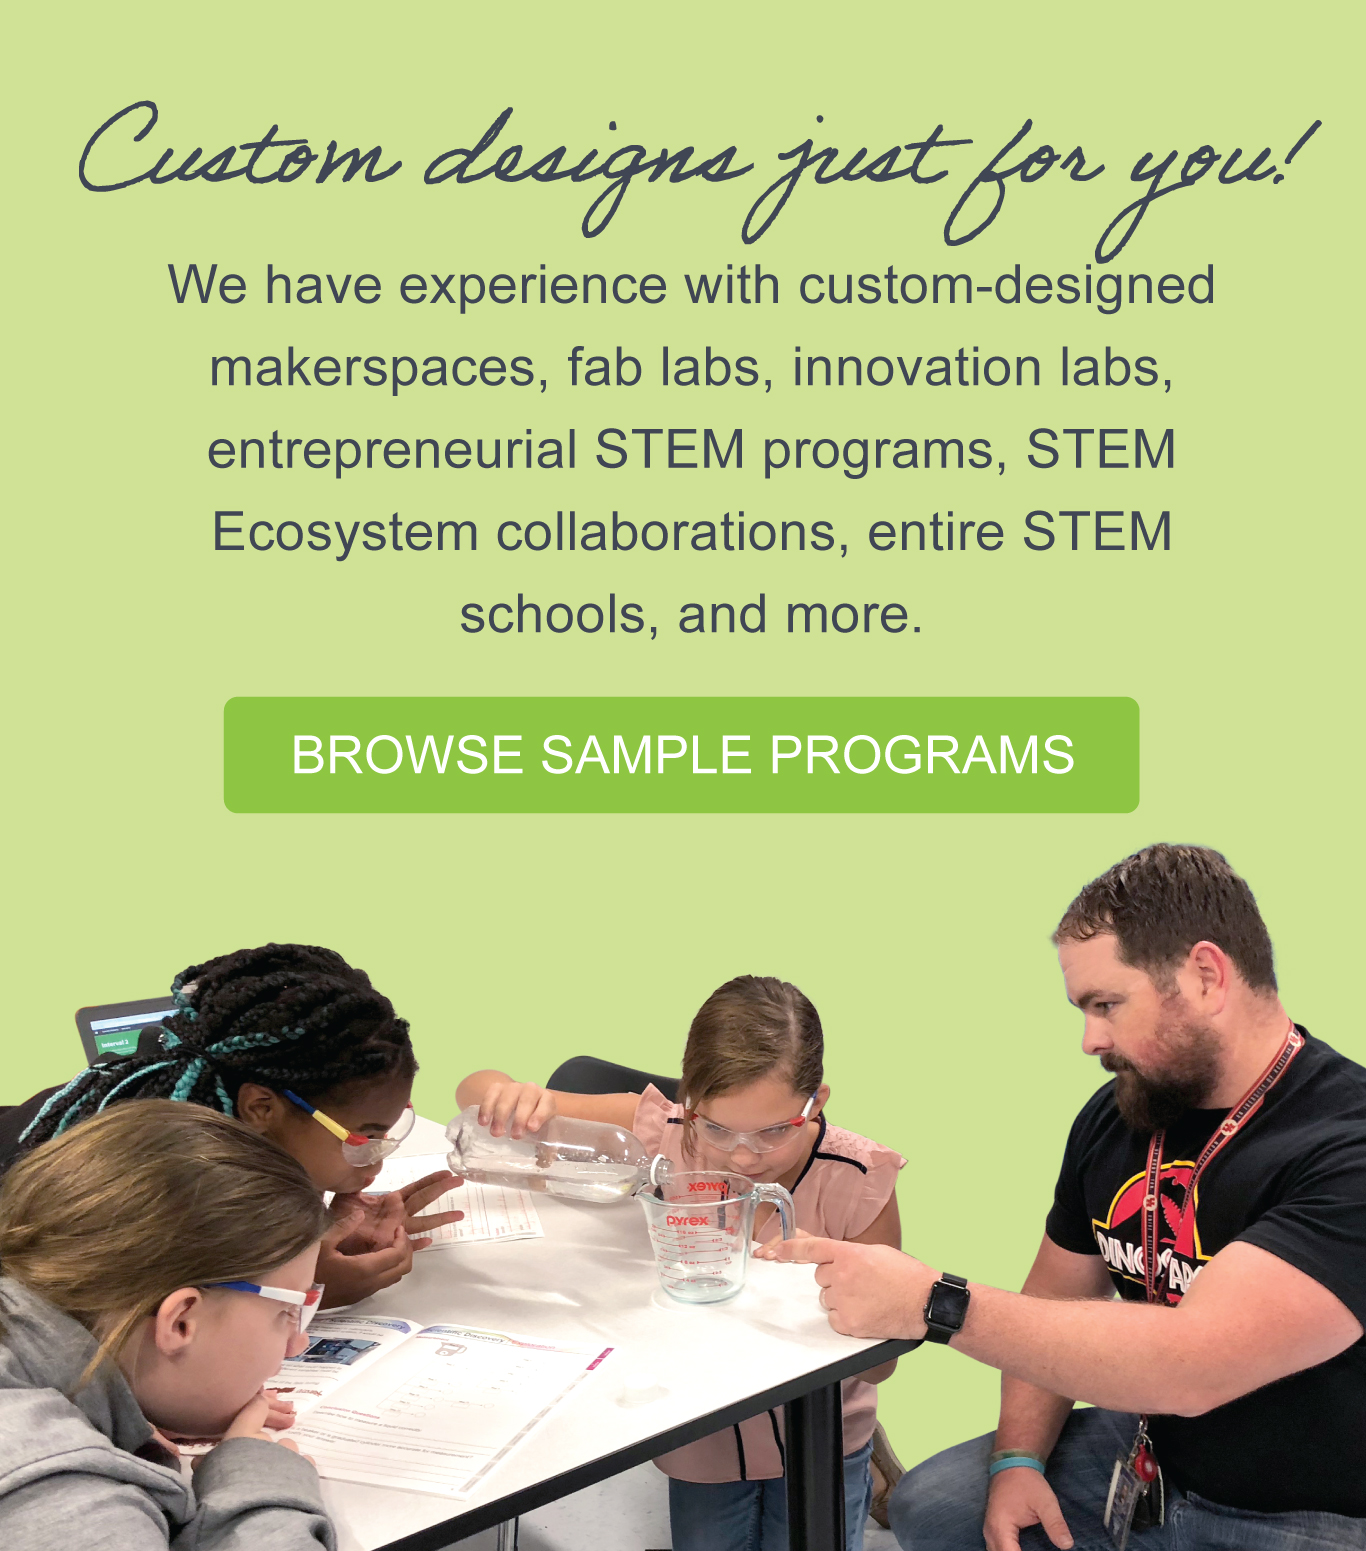 Custom Designs just for you! BROWSE SAMPLE PROGRAMS